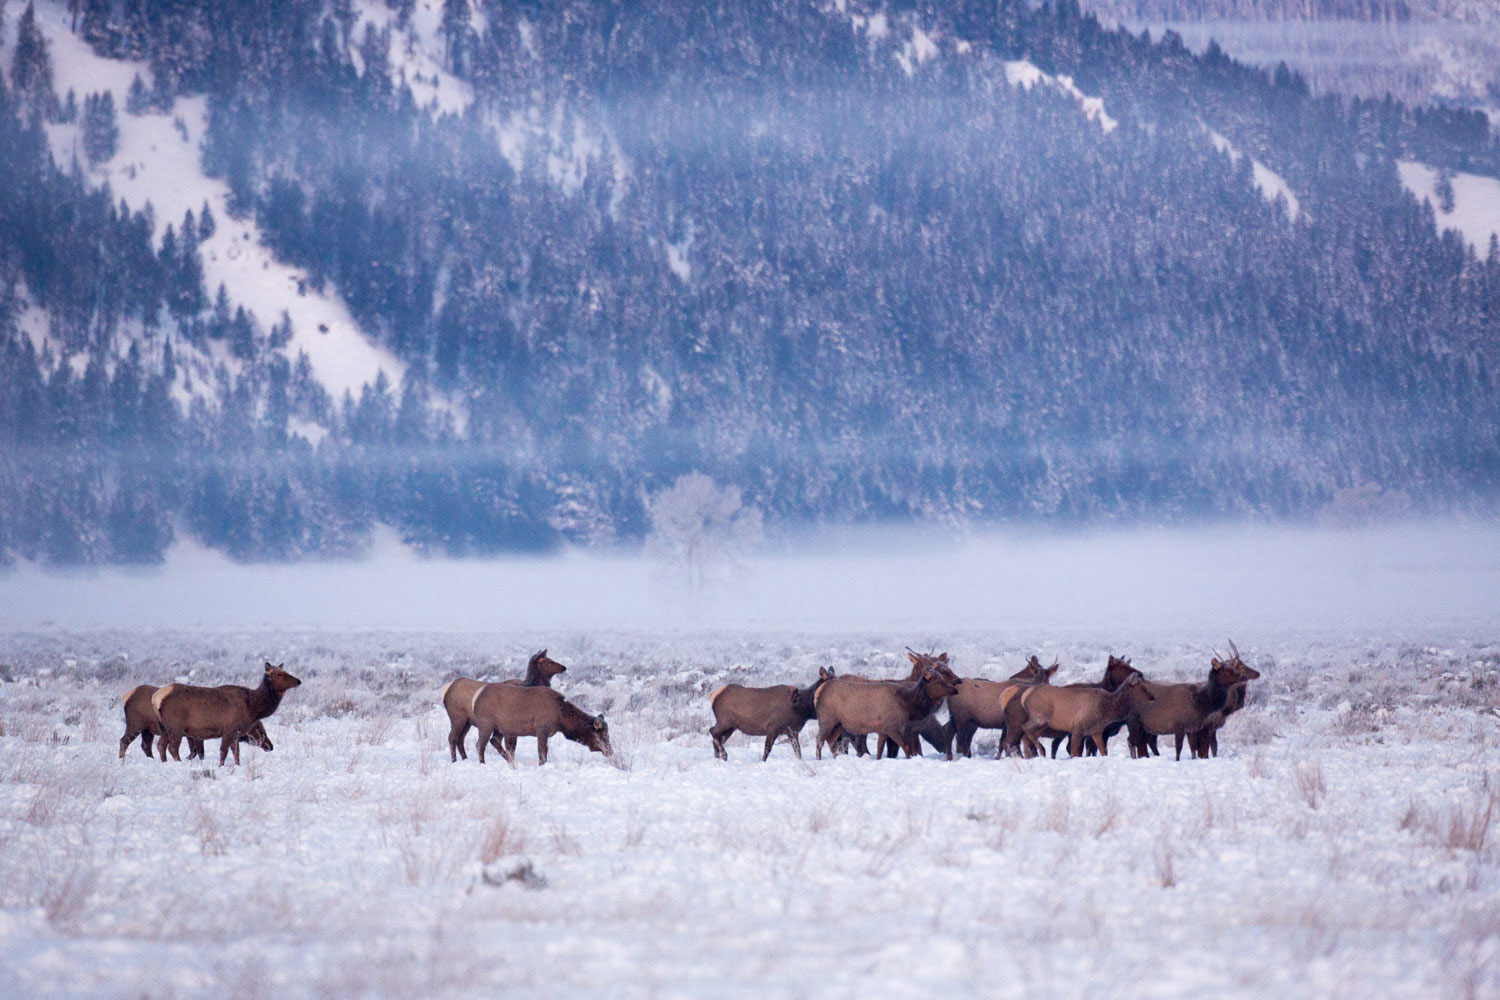 A herd of elk warily crosses the open meadow shortly after sunrise on a bitterly cold winter morning.